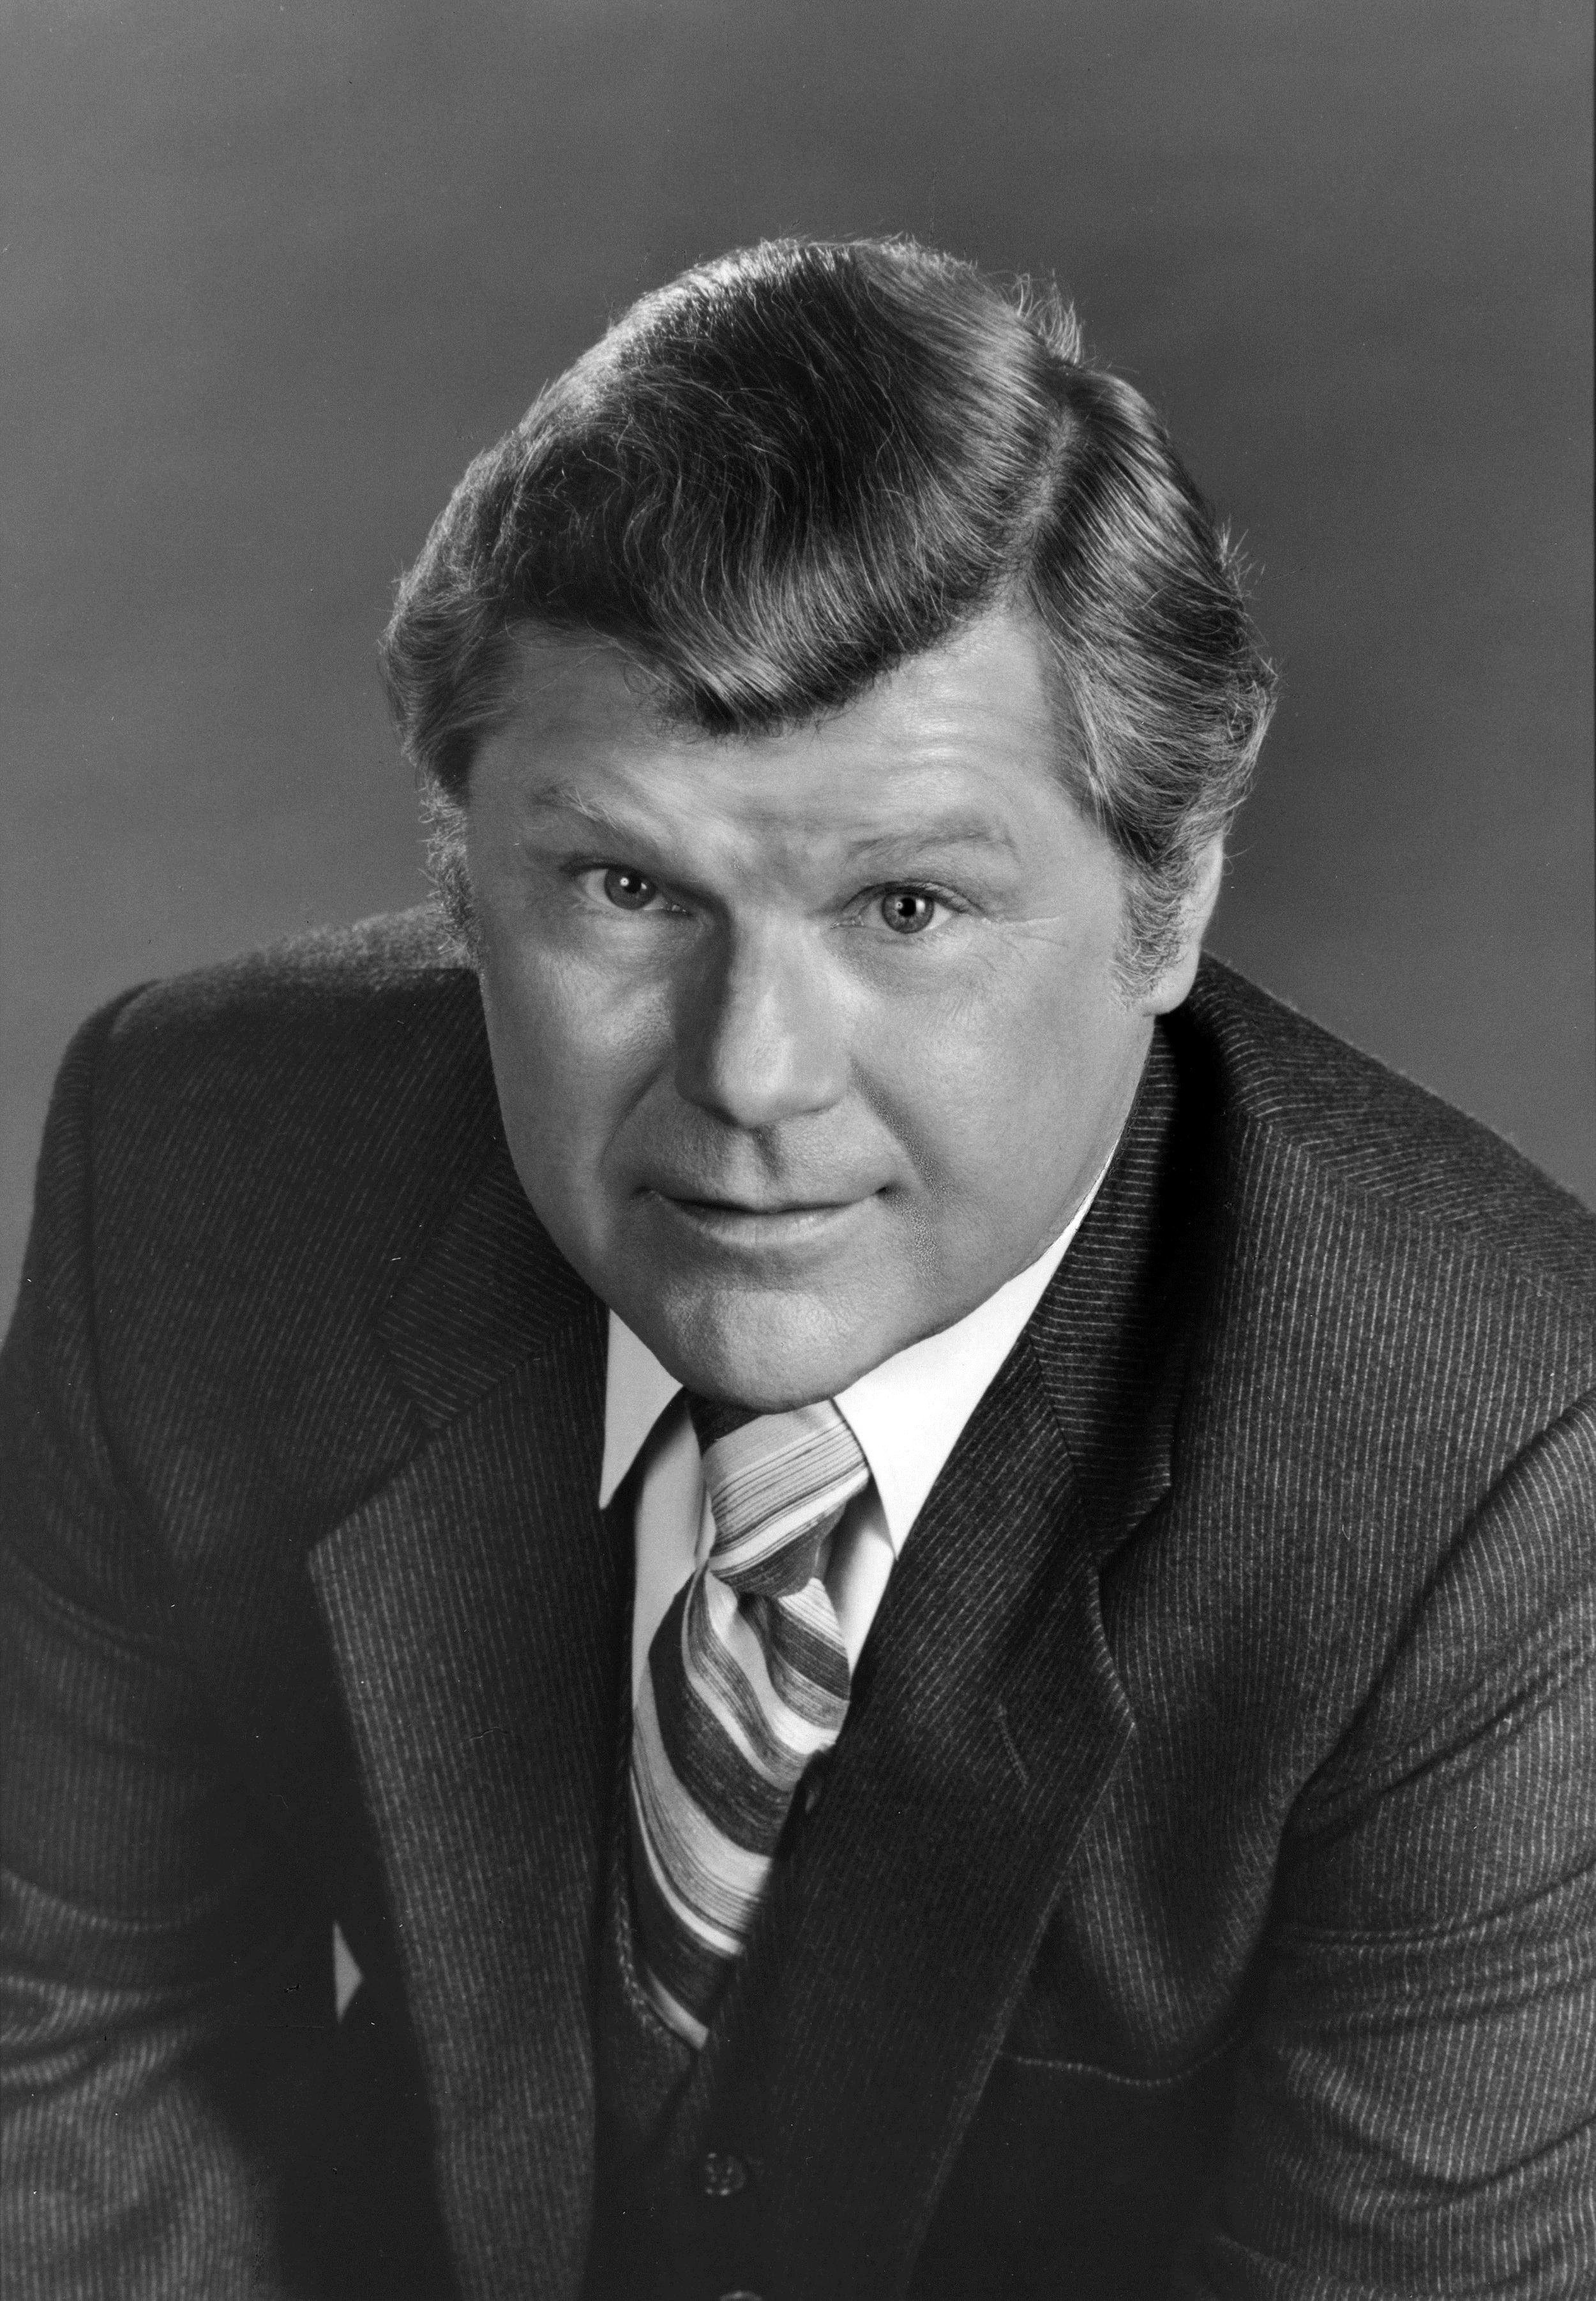 Image: Actor Bob Hastings, a cast member on the daytime series